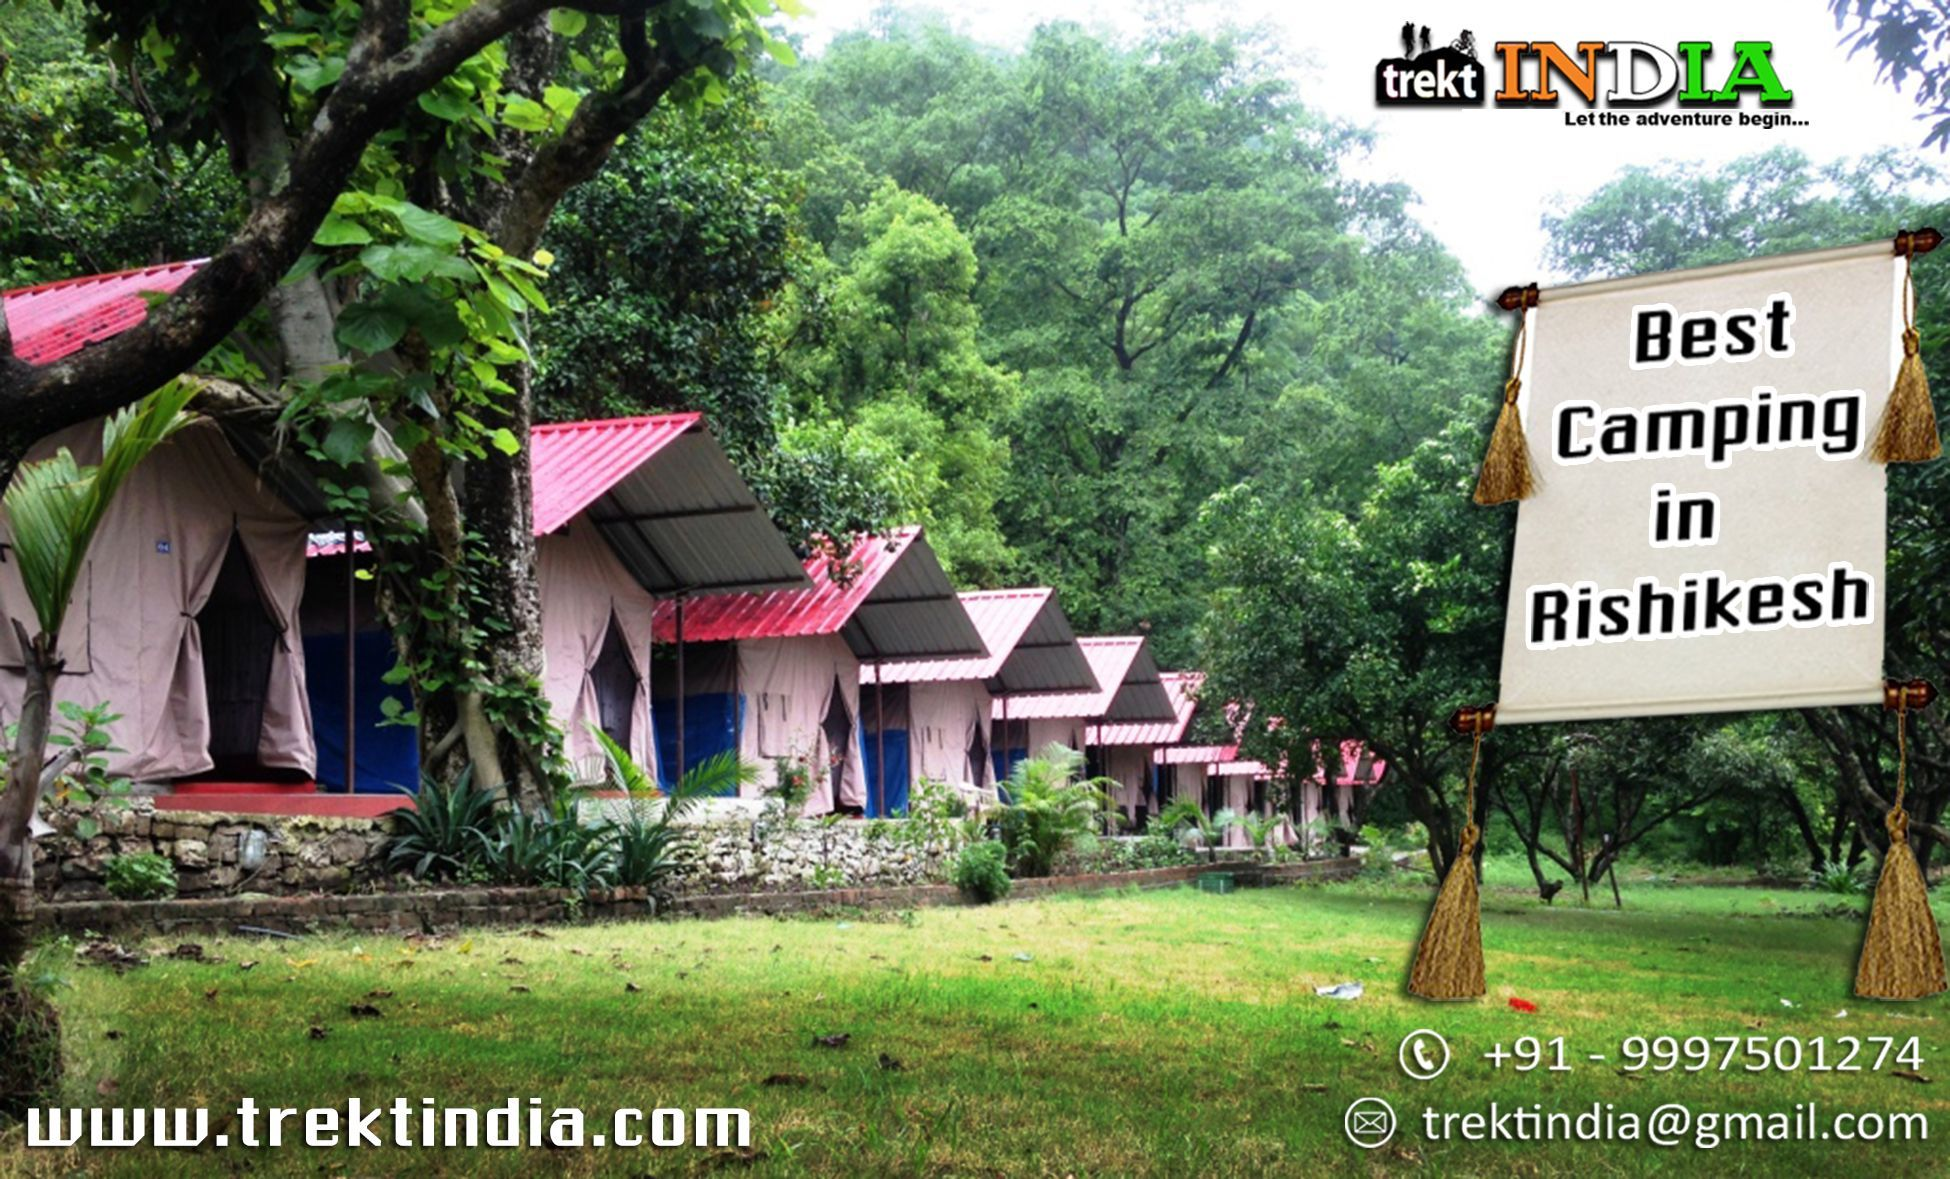 Camping In Rishikesh Camp 5 Elements Assures You An Enchanting Sight Of The Ganga At Set With Aim Understanding Nature